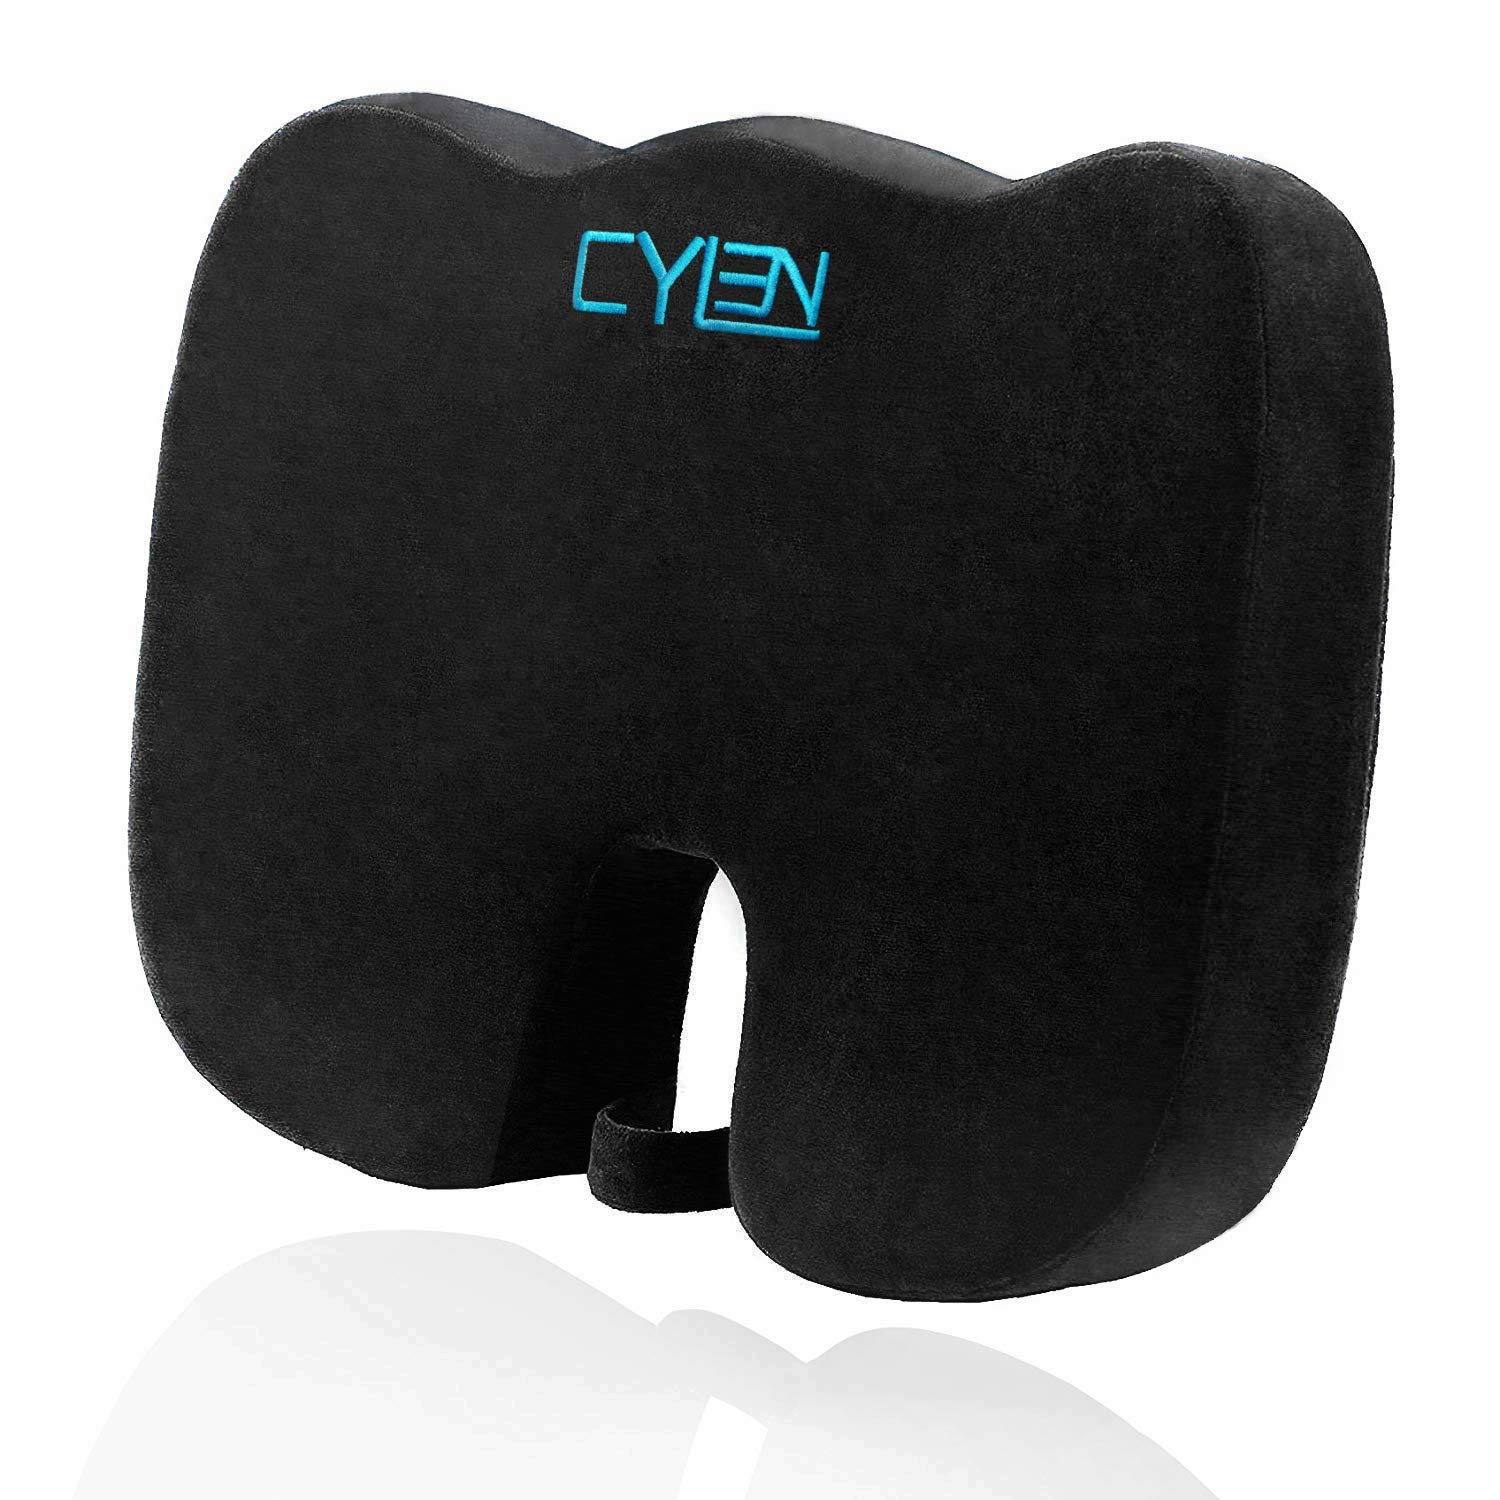 CYLEN Home-Memory Foam Bamboo Charcoal Infused Ventilated Orthopedic Seat Cushion for Car and Wheelchair - Washable & Breathable Cover (Black) by CYLEN